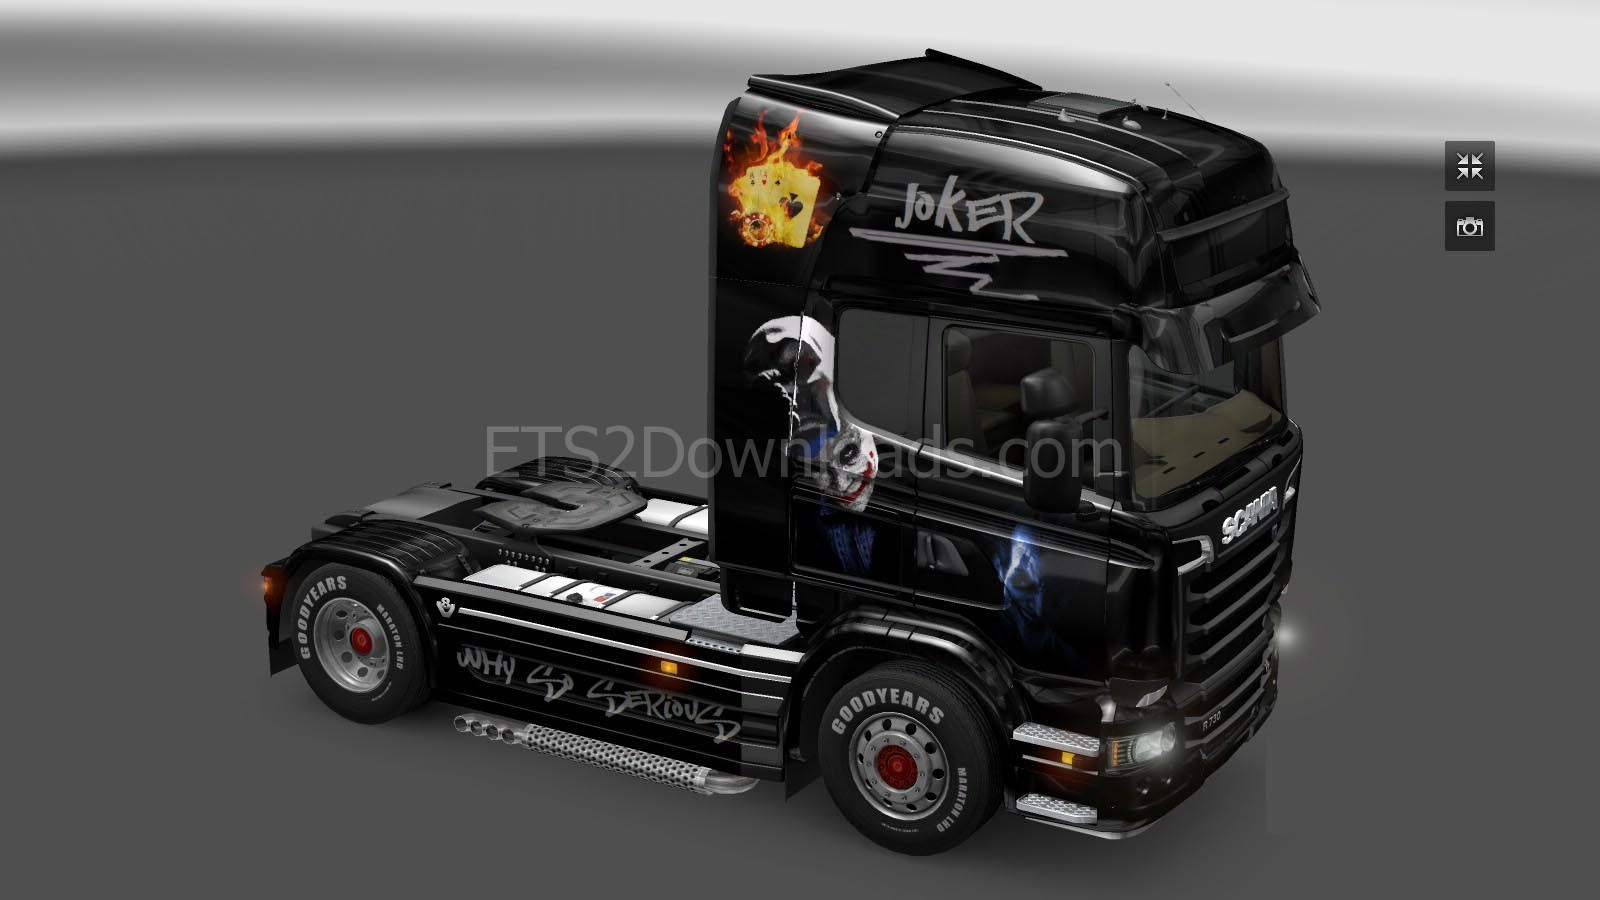 joker-skin-for-scania-streamline-ets2-1